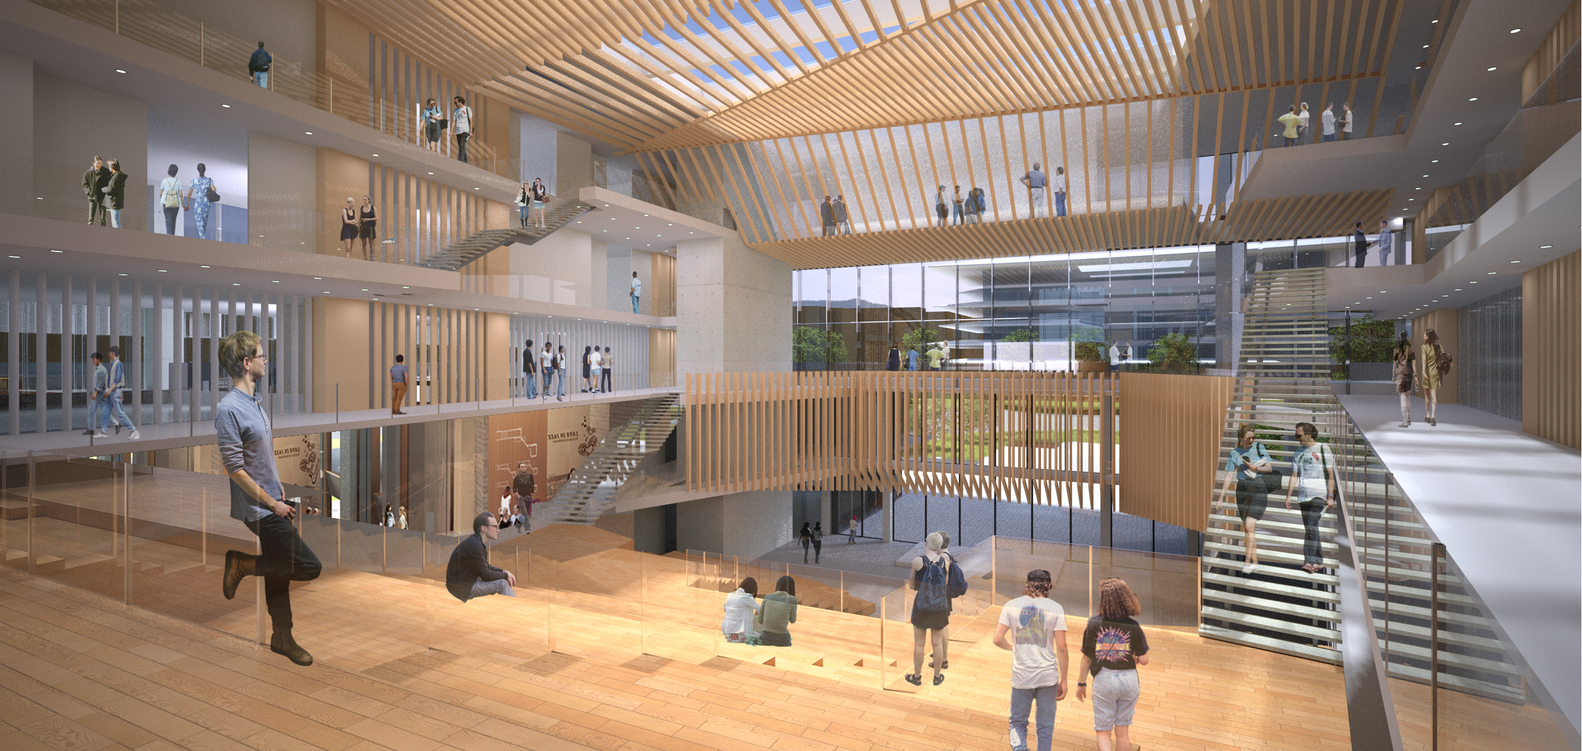 High Quality Winning Design Revealed For New College Of Architecture And Design In  China,Courtesy Of Moore